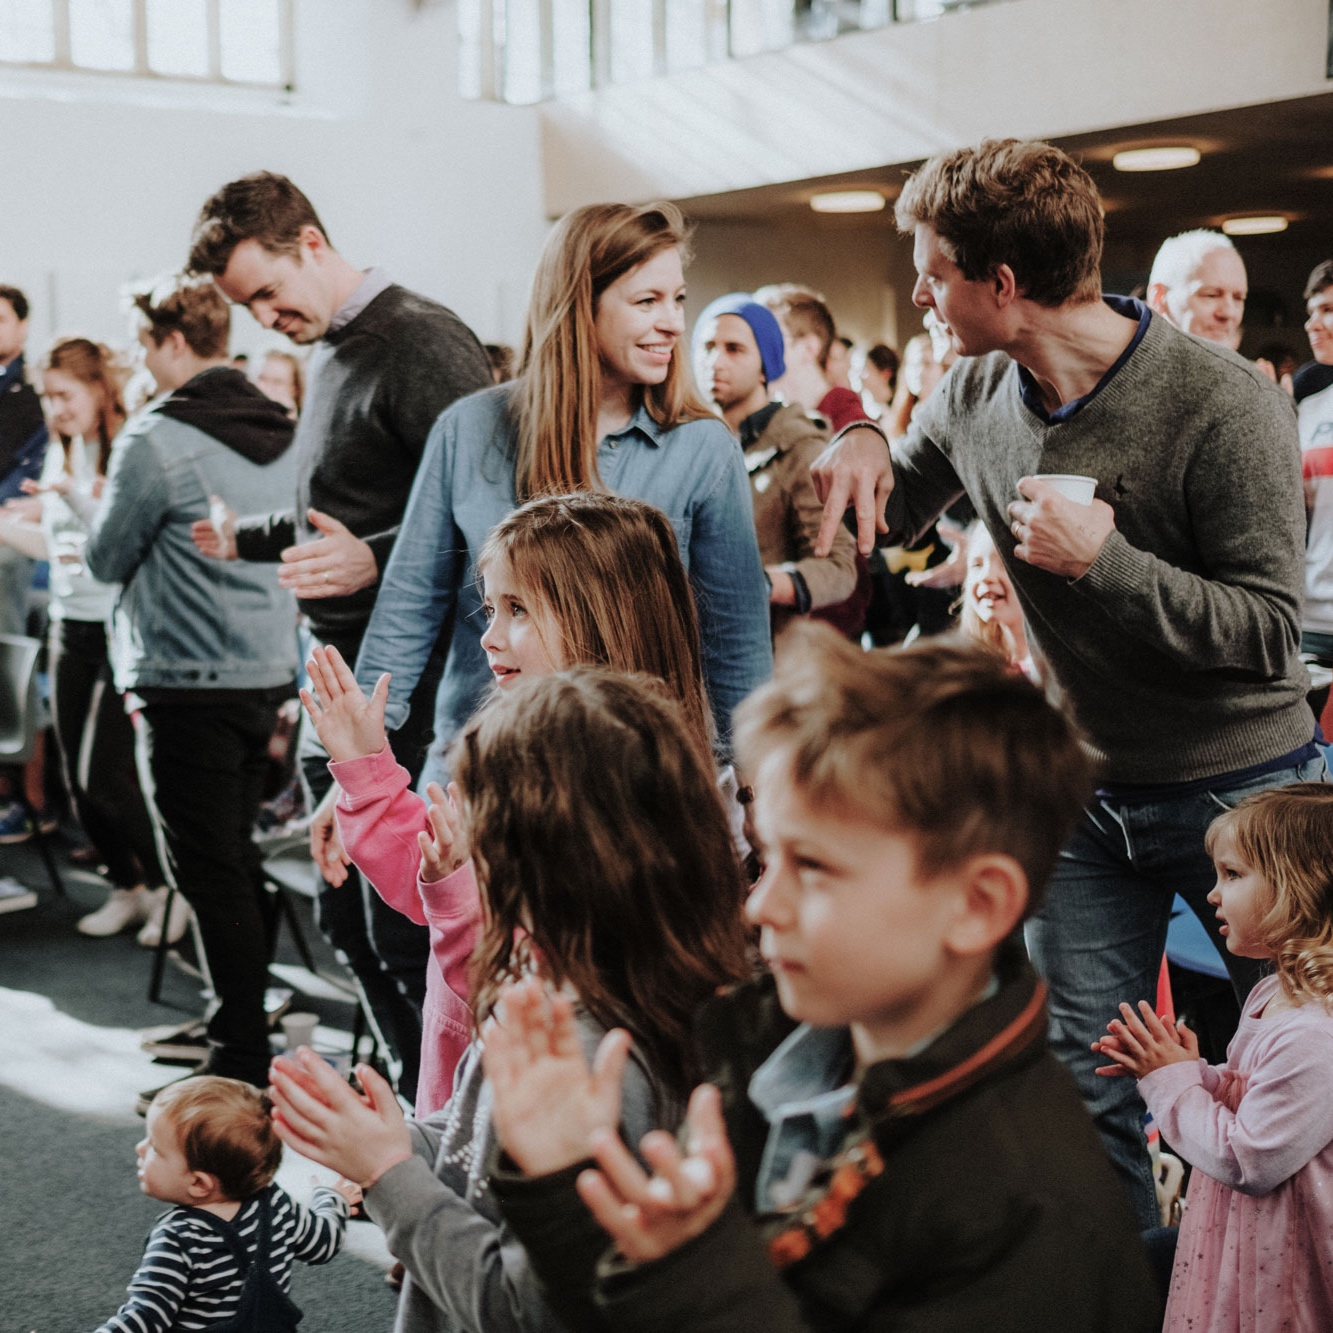 10:30am - The 10:30am service includes family worship, teaching and prayer, plus kids work for children 0-11 years old. Doors open half an hour before the service for coffee and pastries.